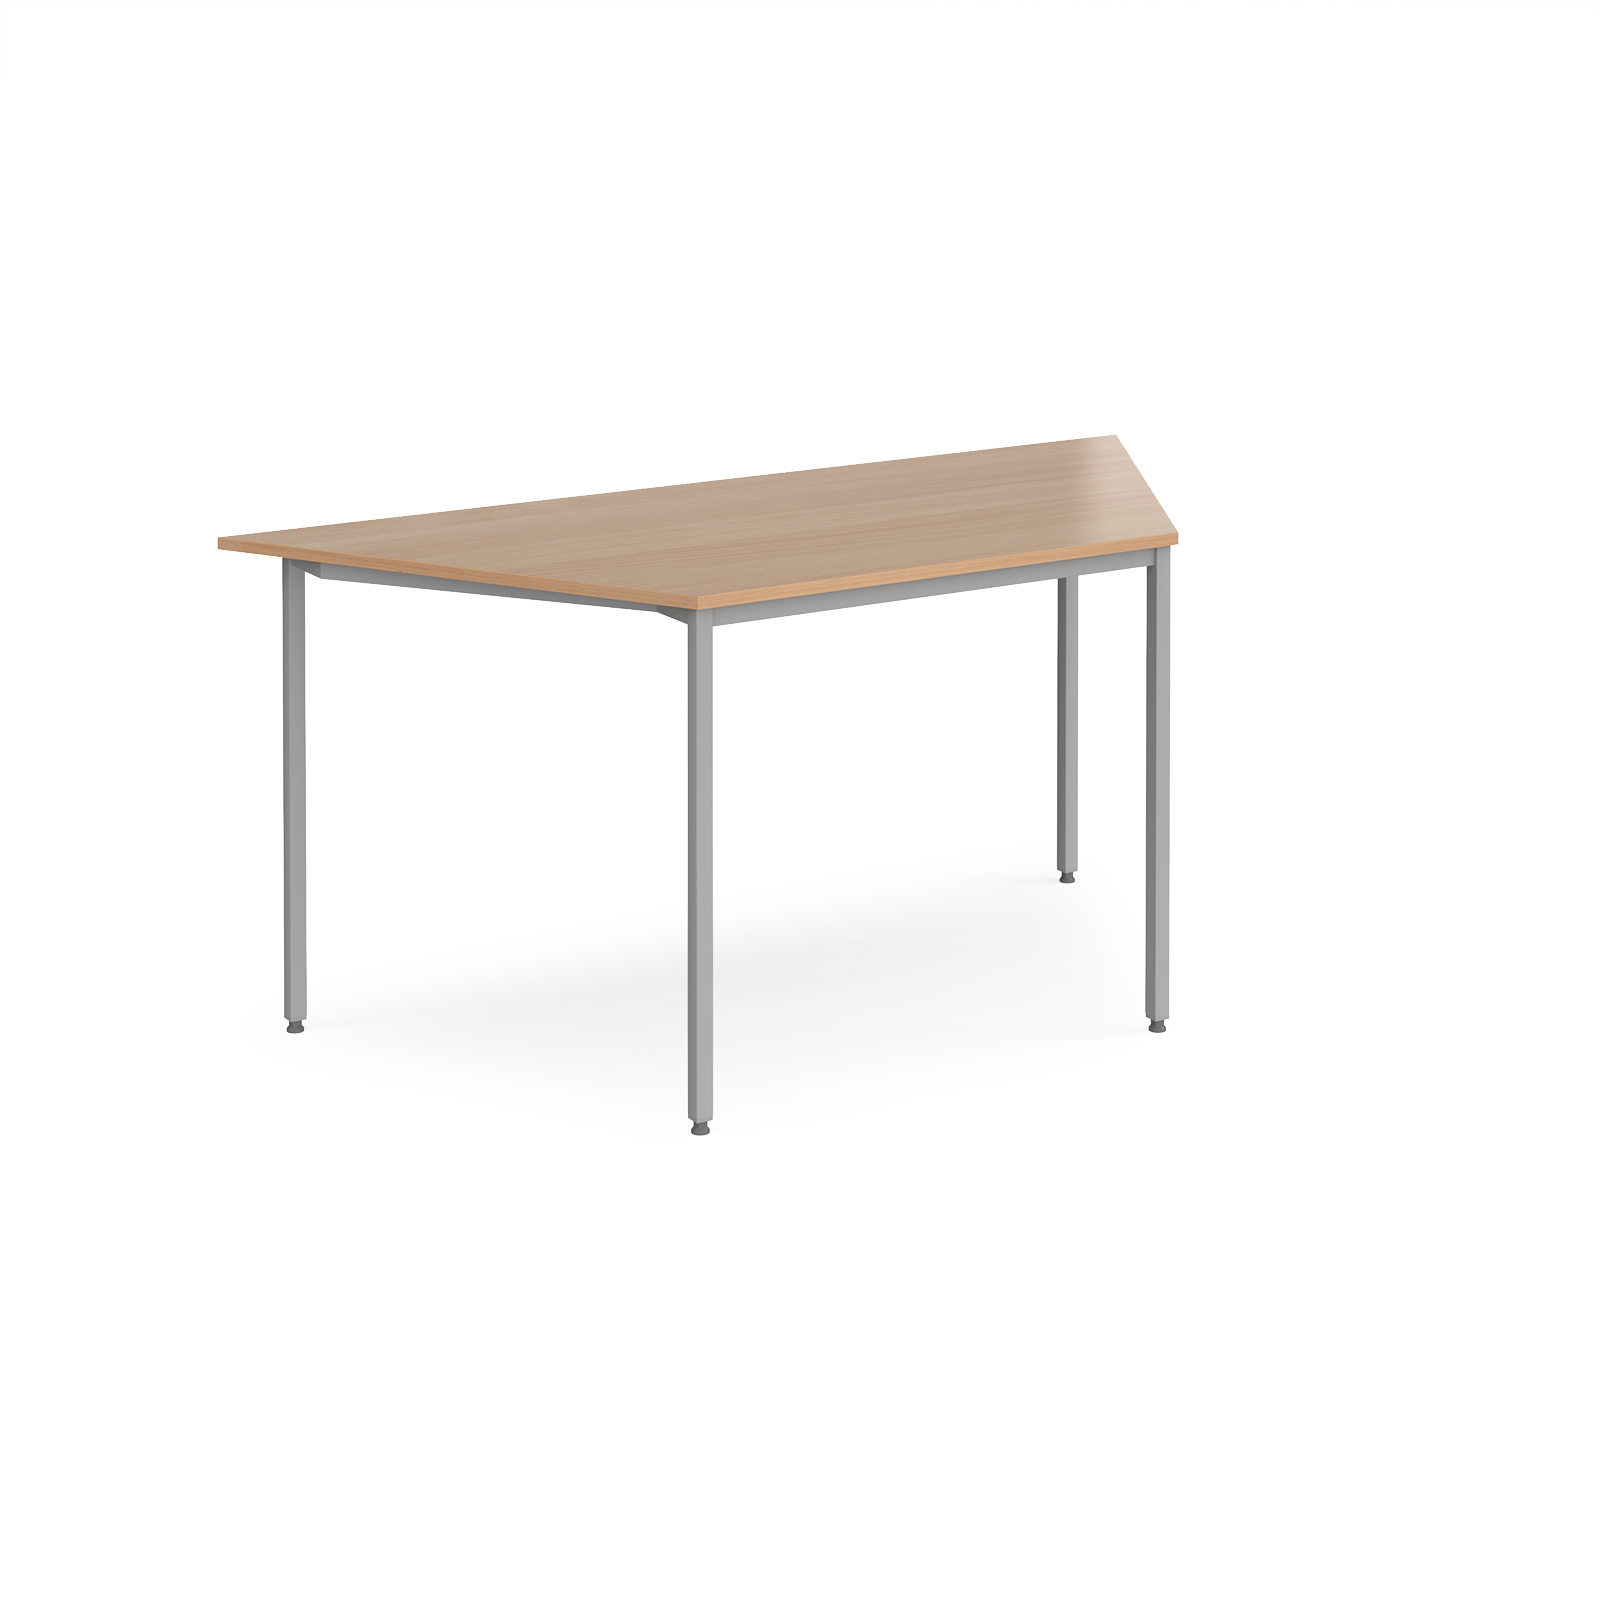 Trapezoidal flexi table with silver frame 1600mm x 800mm - beech